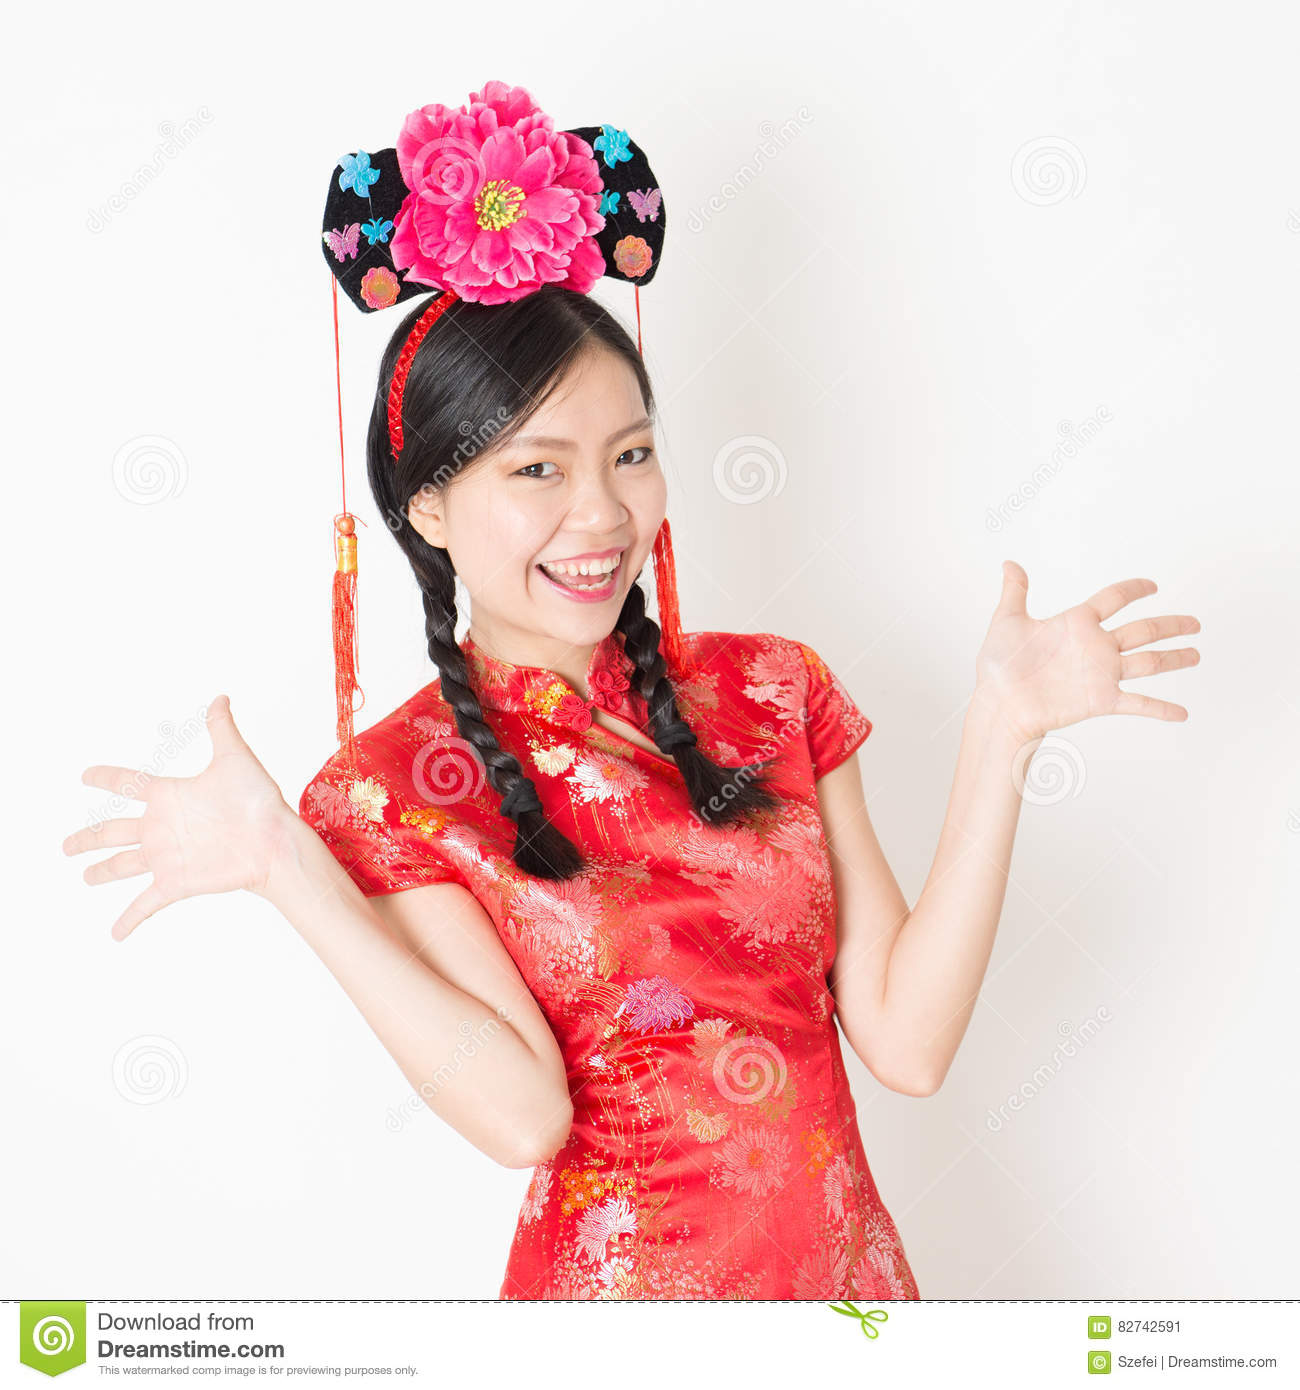 da16d4c06 Young Asian woman in traditional qipao dress holding mandarin orange and  smiling, celebrating Chinese Lunar New Year or spring festival, standing on  plain ...